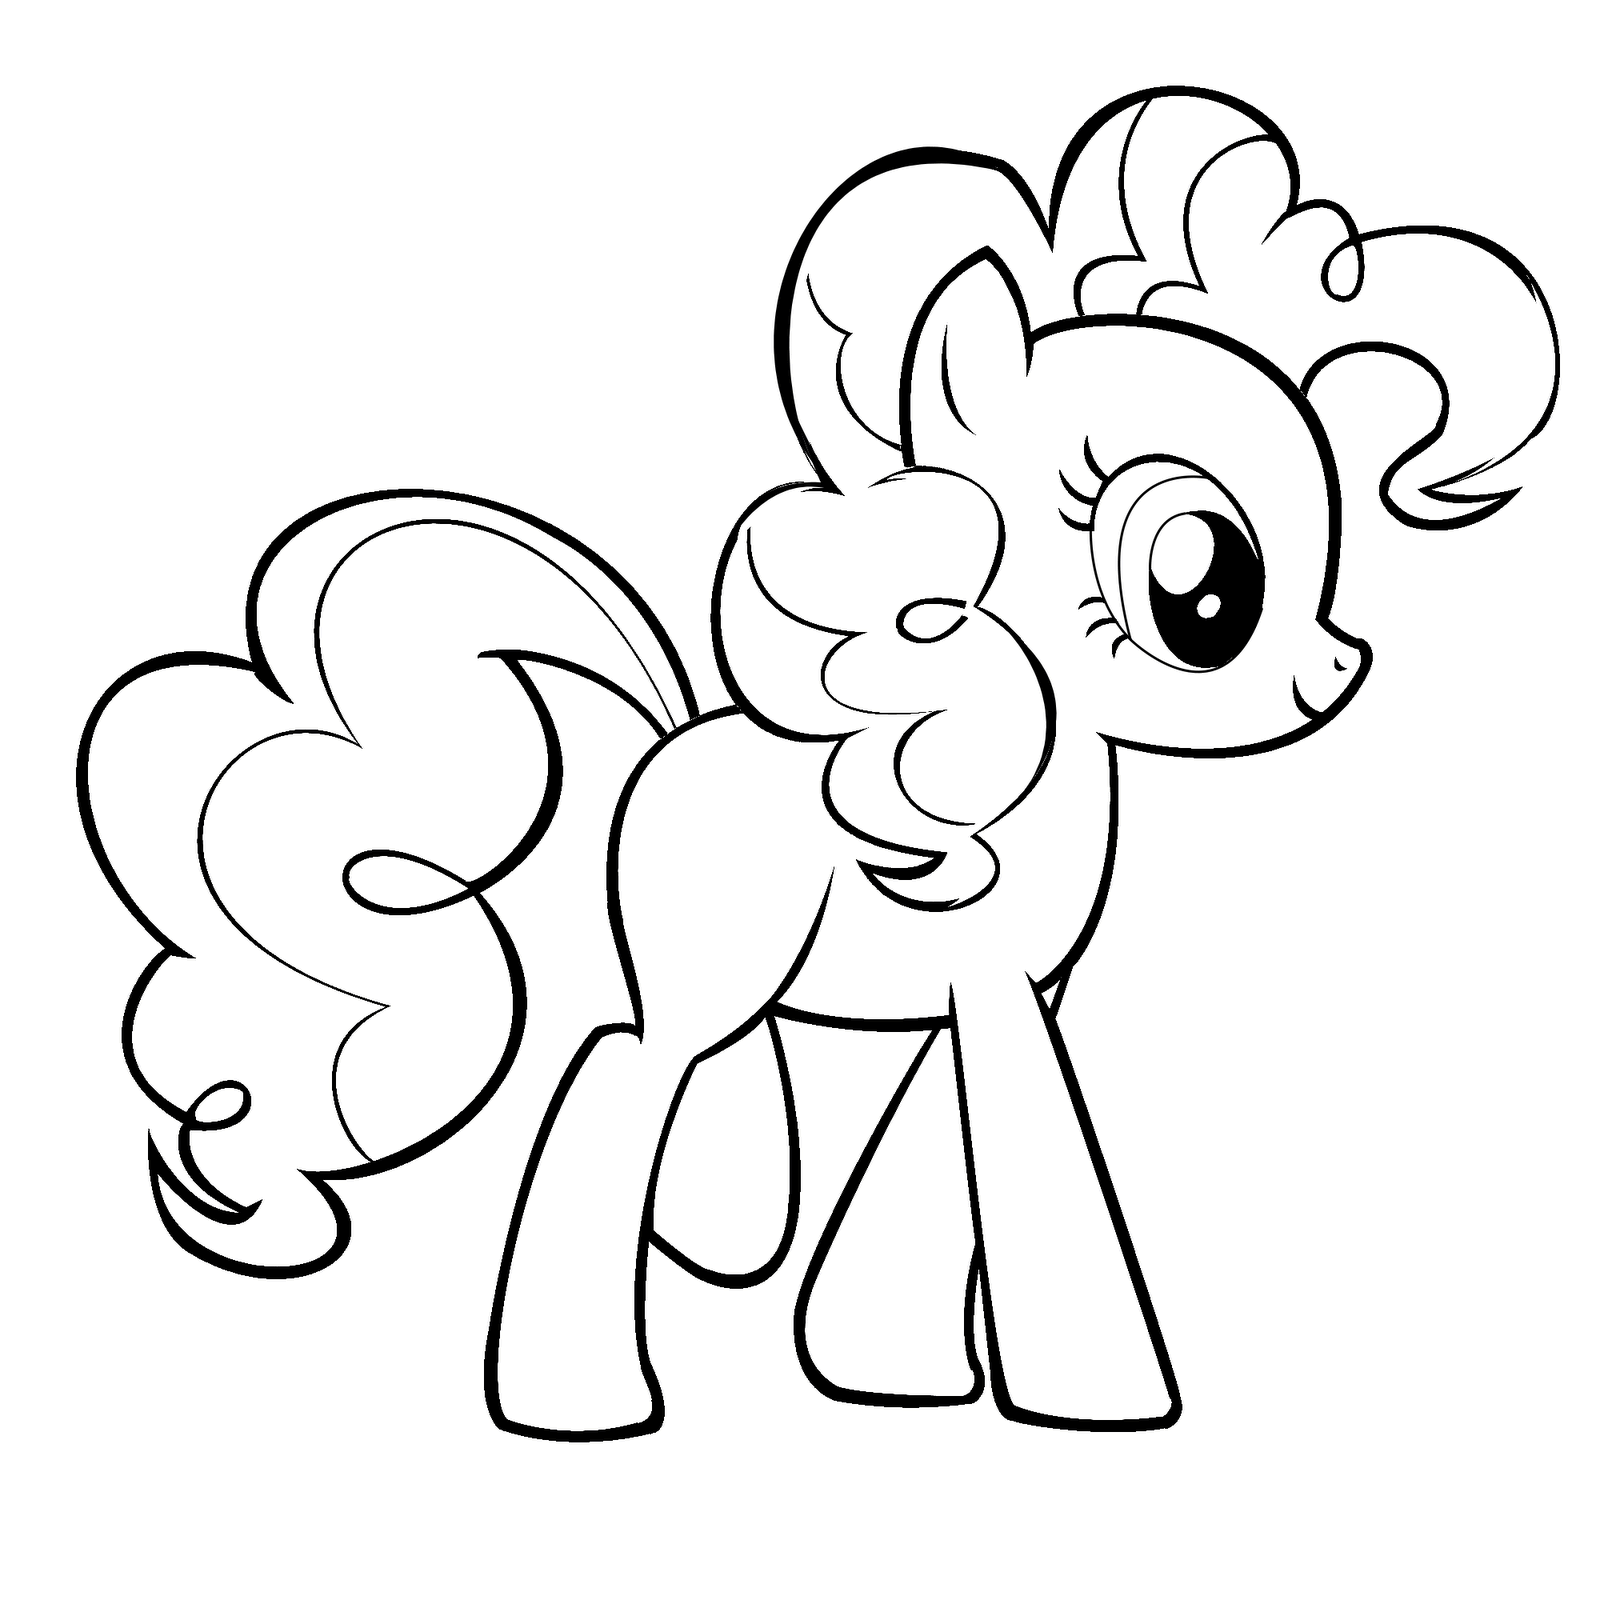 cute pony coloring pages new cute my little pony coloring pages new coloring pages cute pony coloring pages